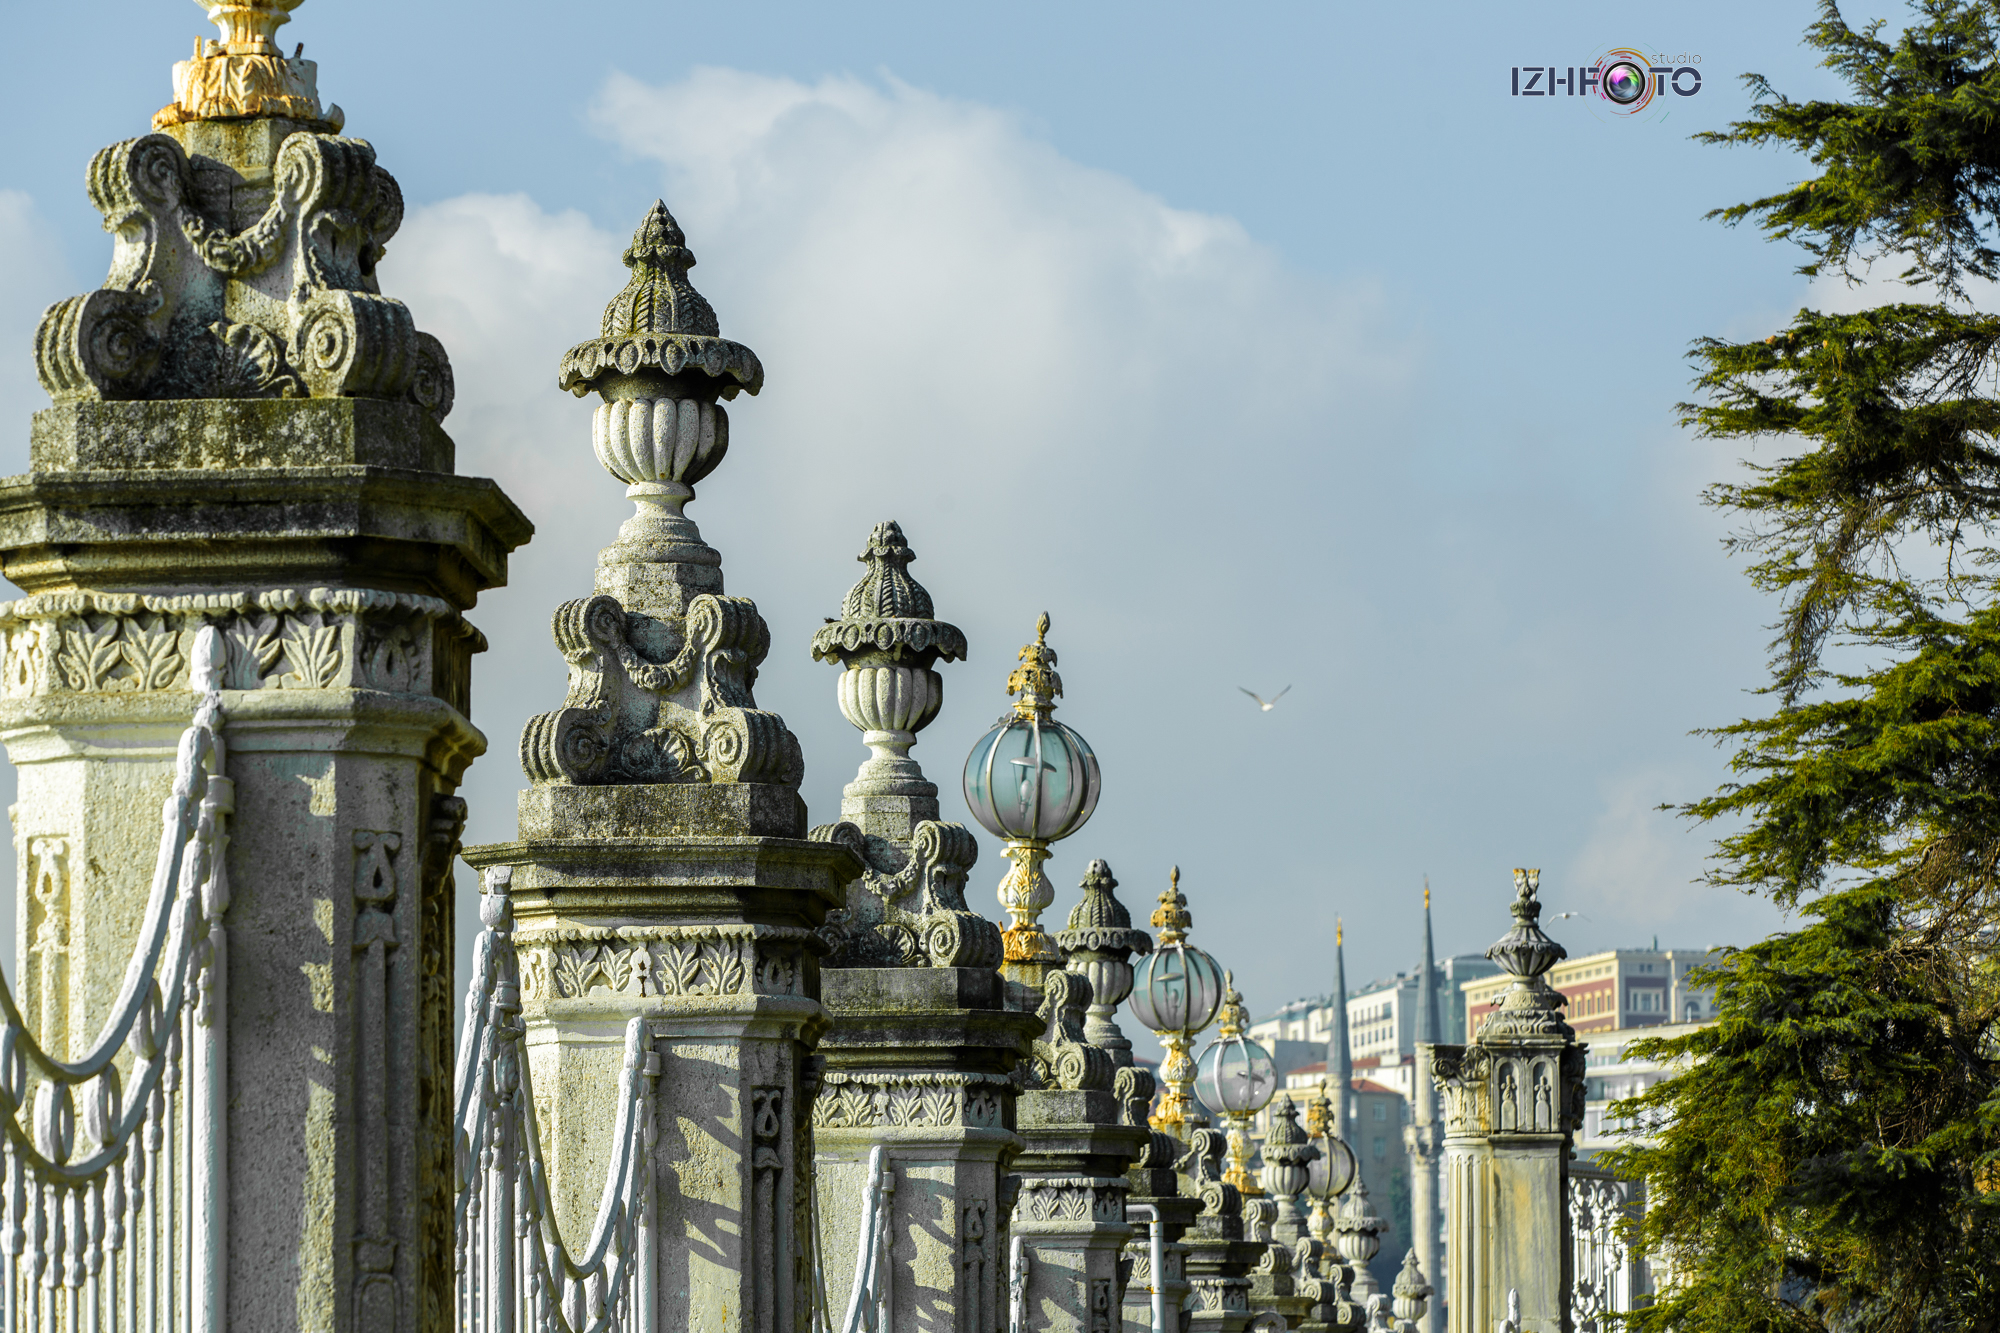 Fence and lanterns of Dolmabahce Palace in Istanbul